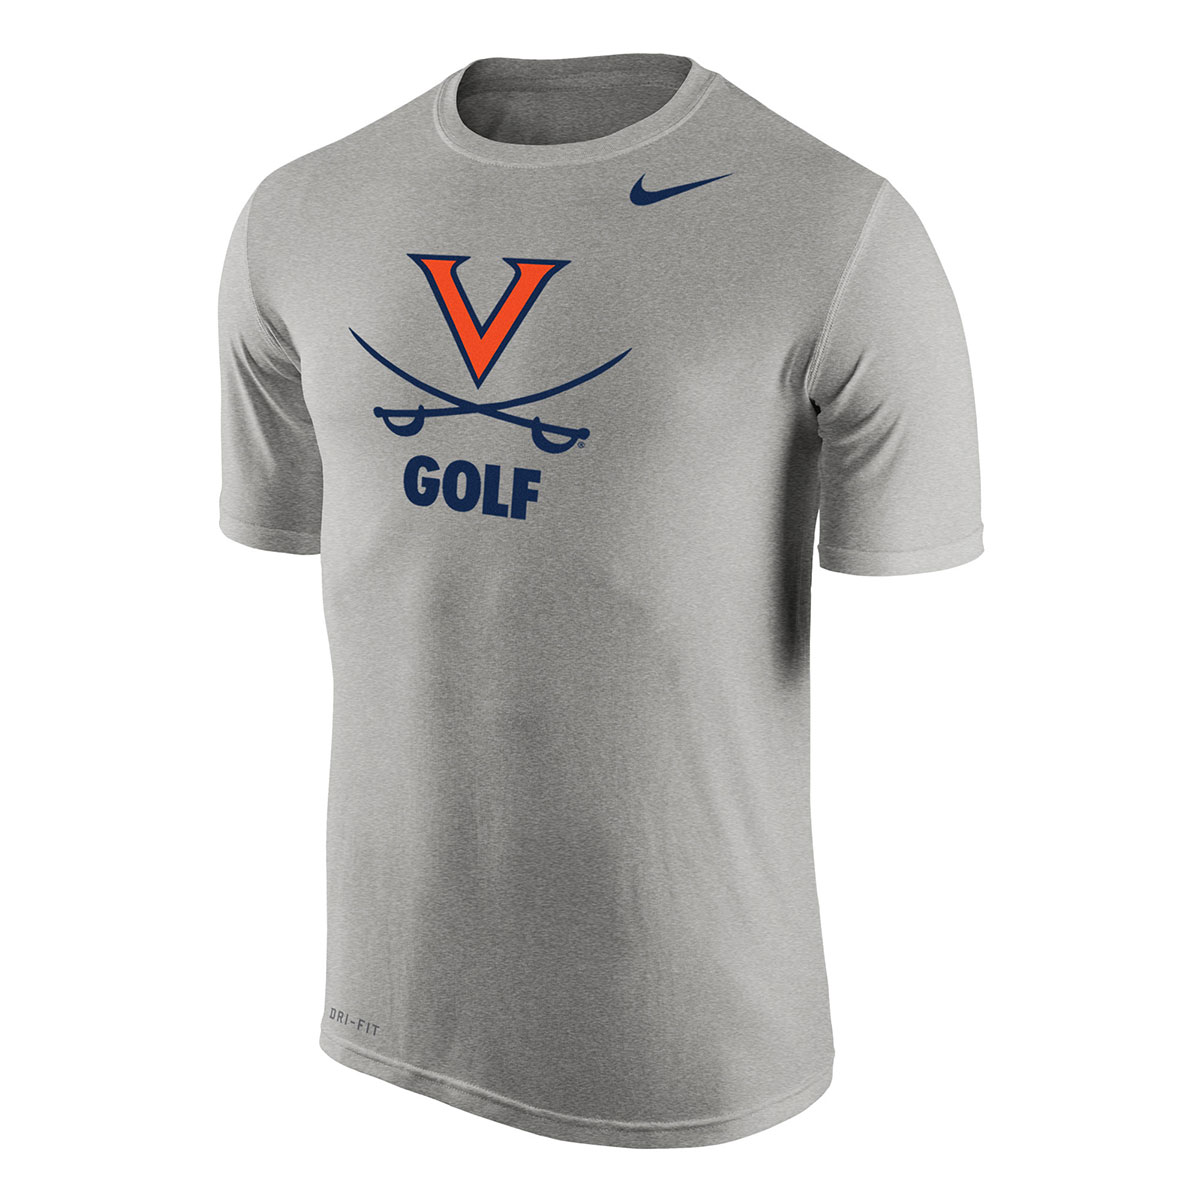 University of Virginia Golf NIKE Dri-Fit T-shirt